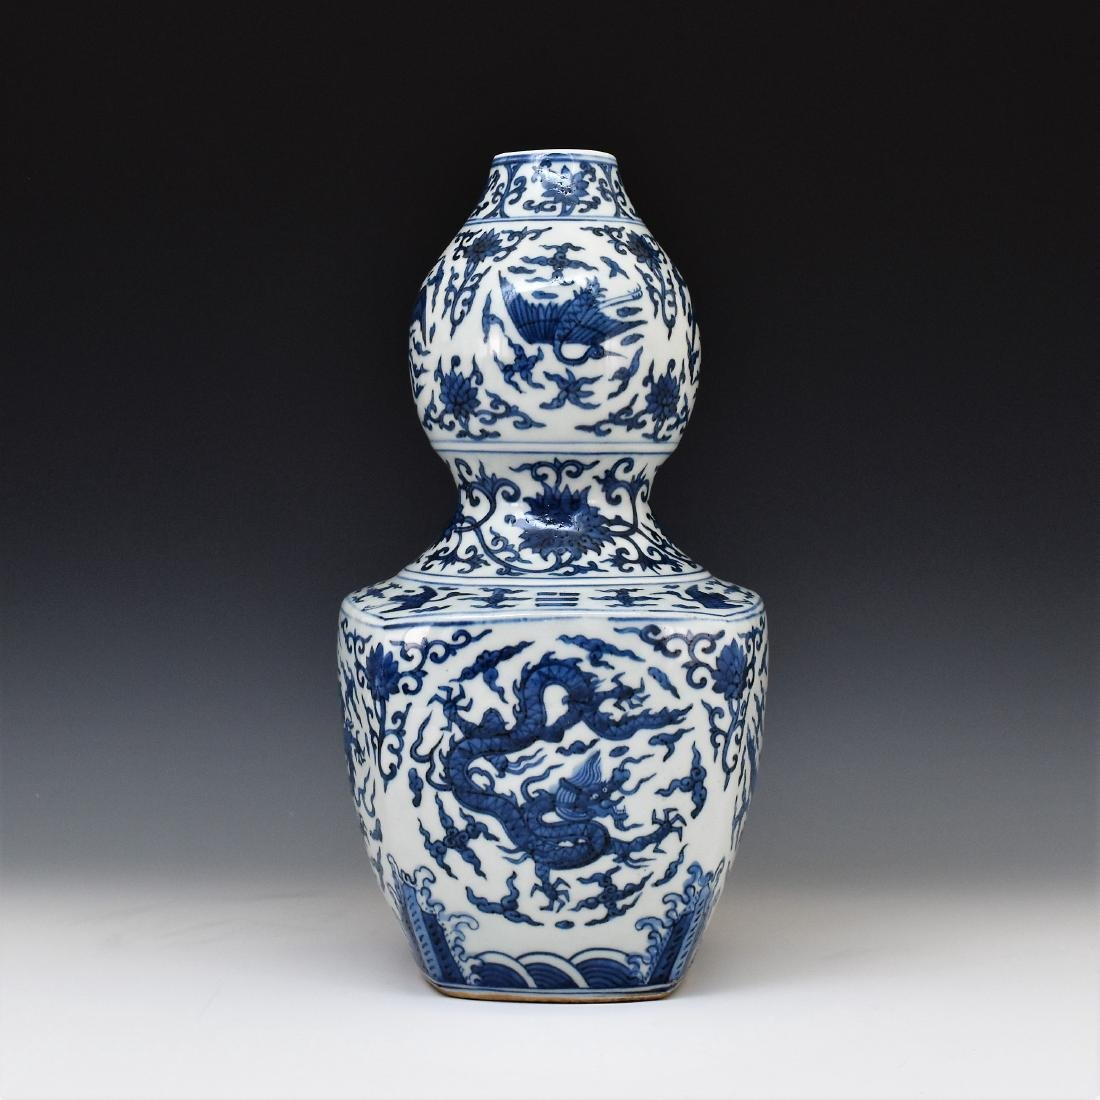 MING BLUE & WHITE DRAGON DOUBLE GOURD VASE